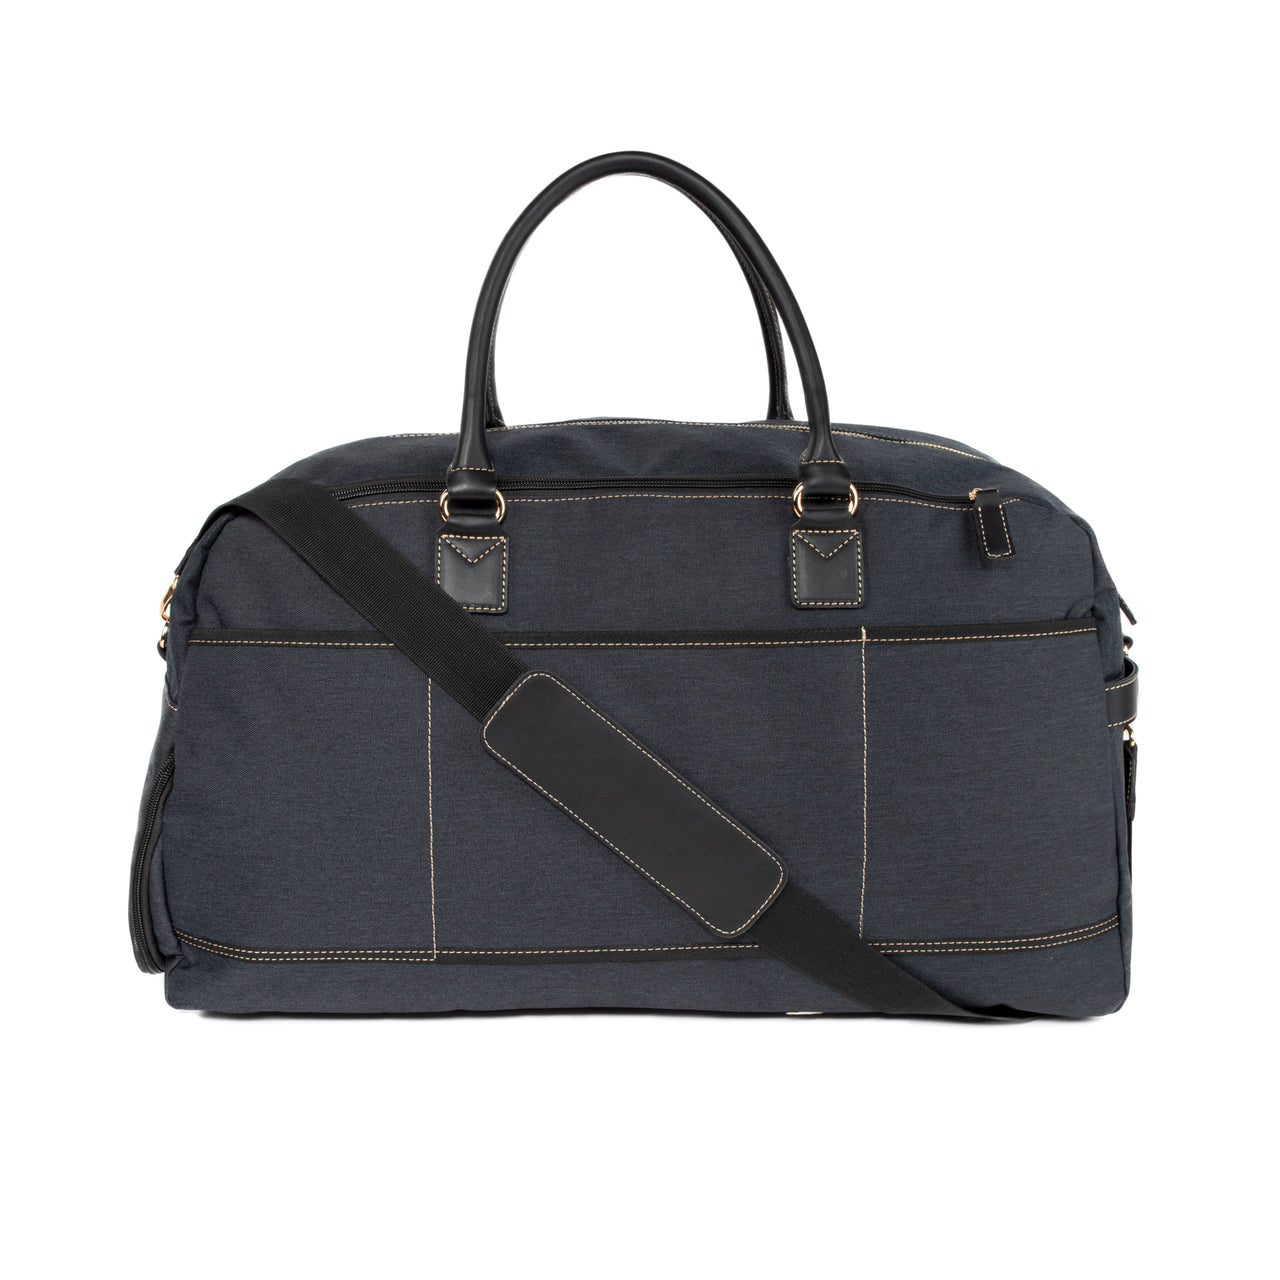 The Getaway Duffel Bag